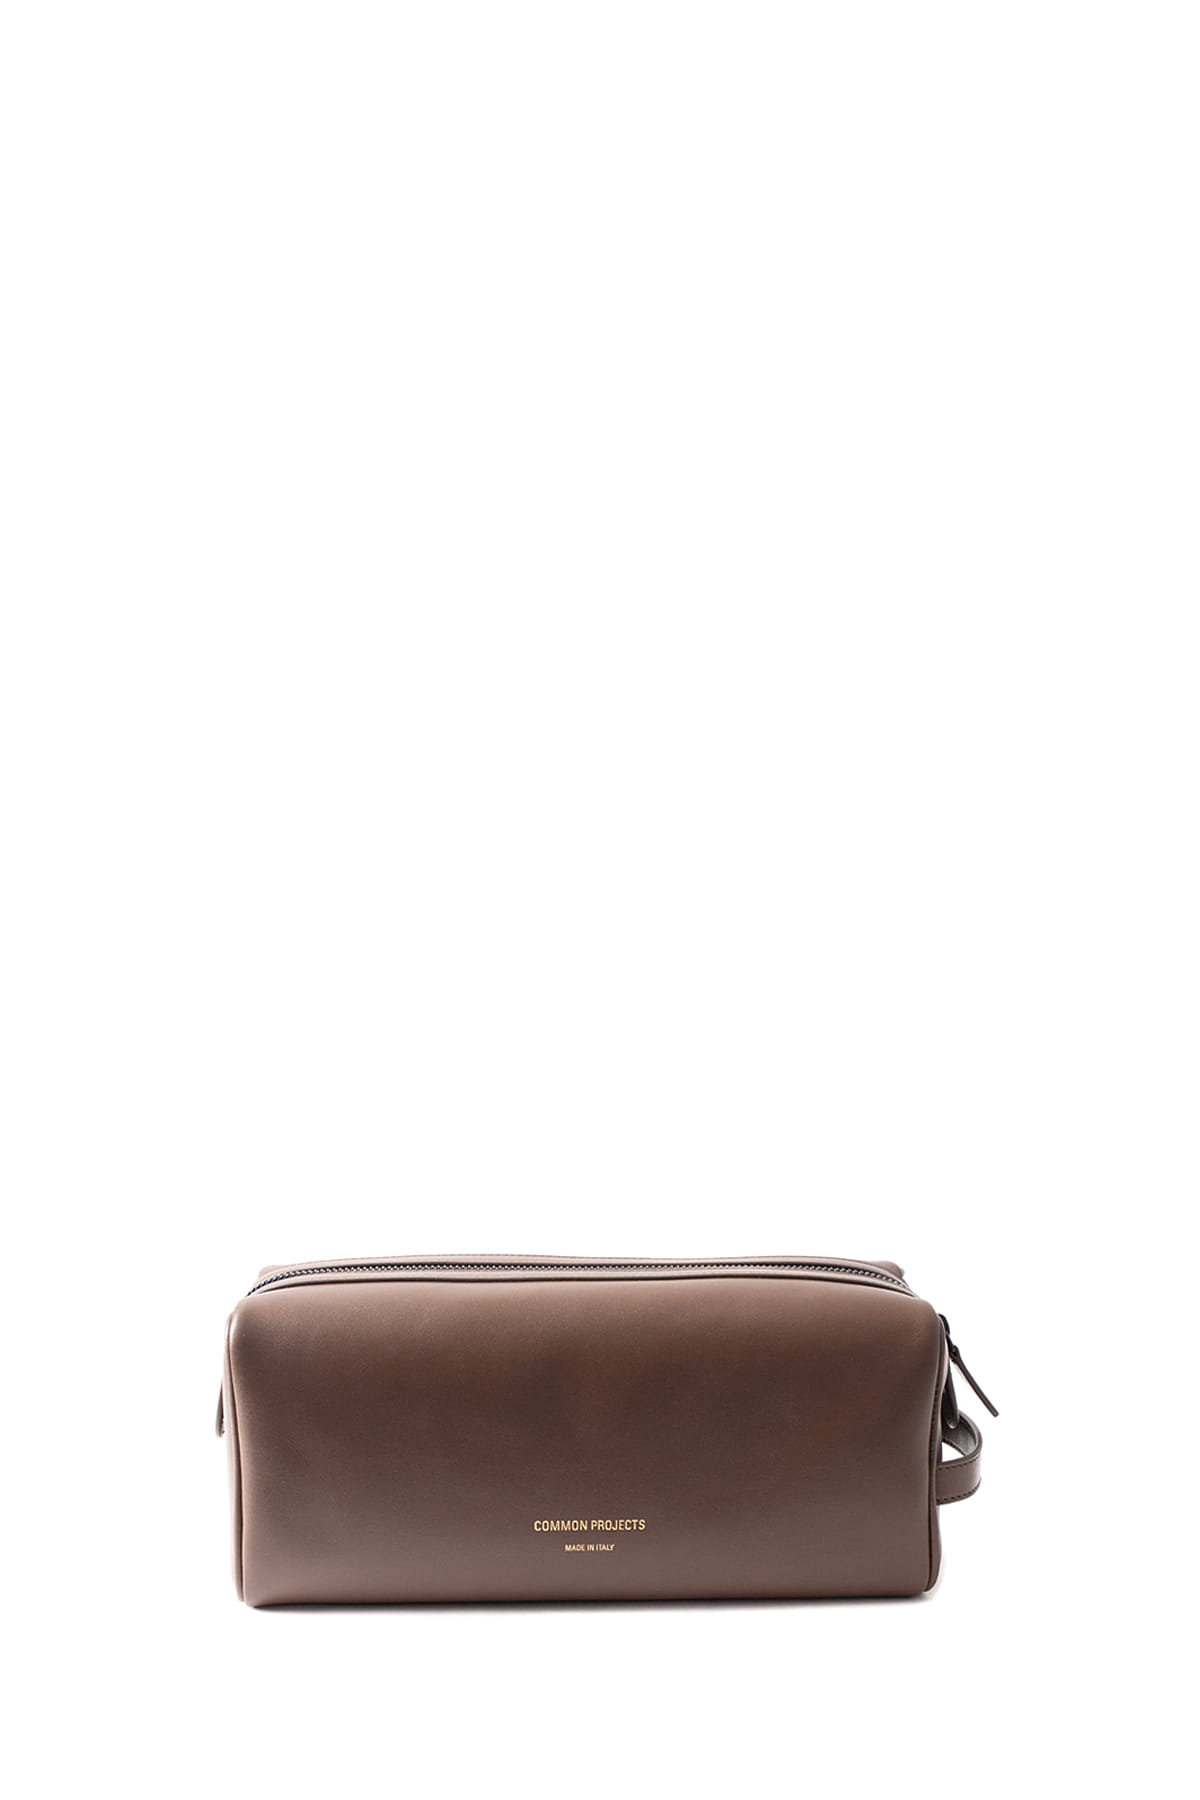 Common Projects : Toiletry Bag (Brown)